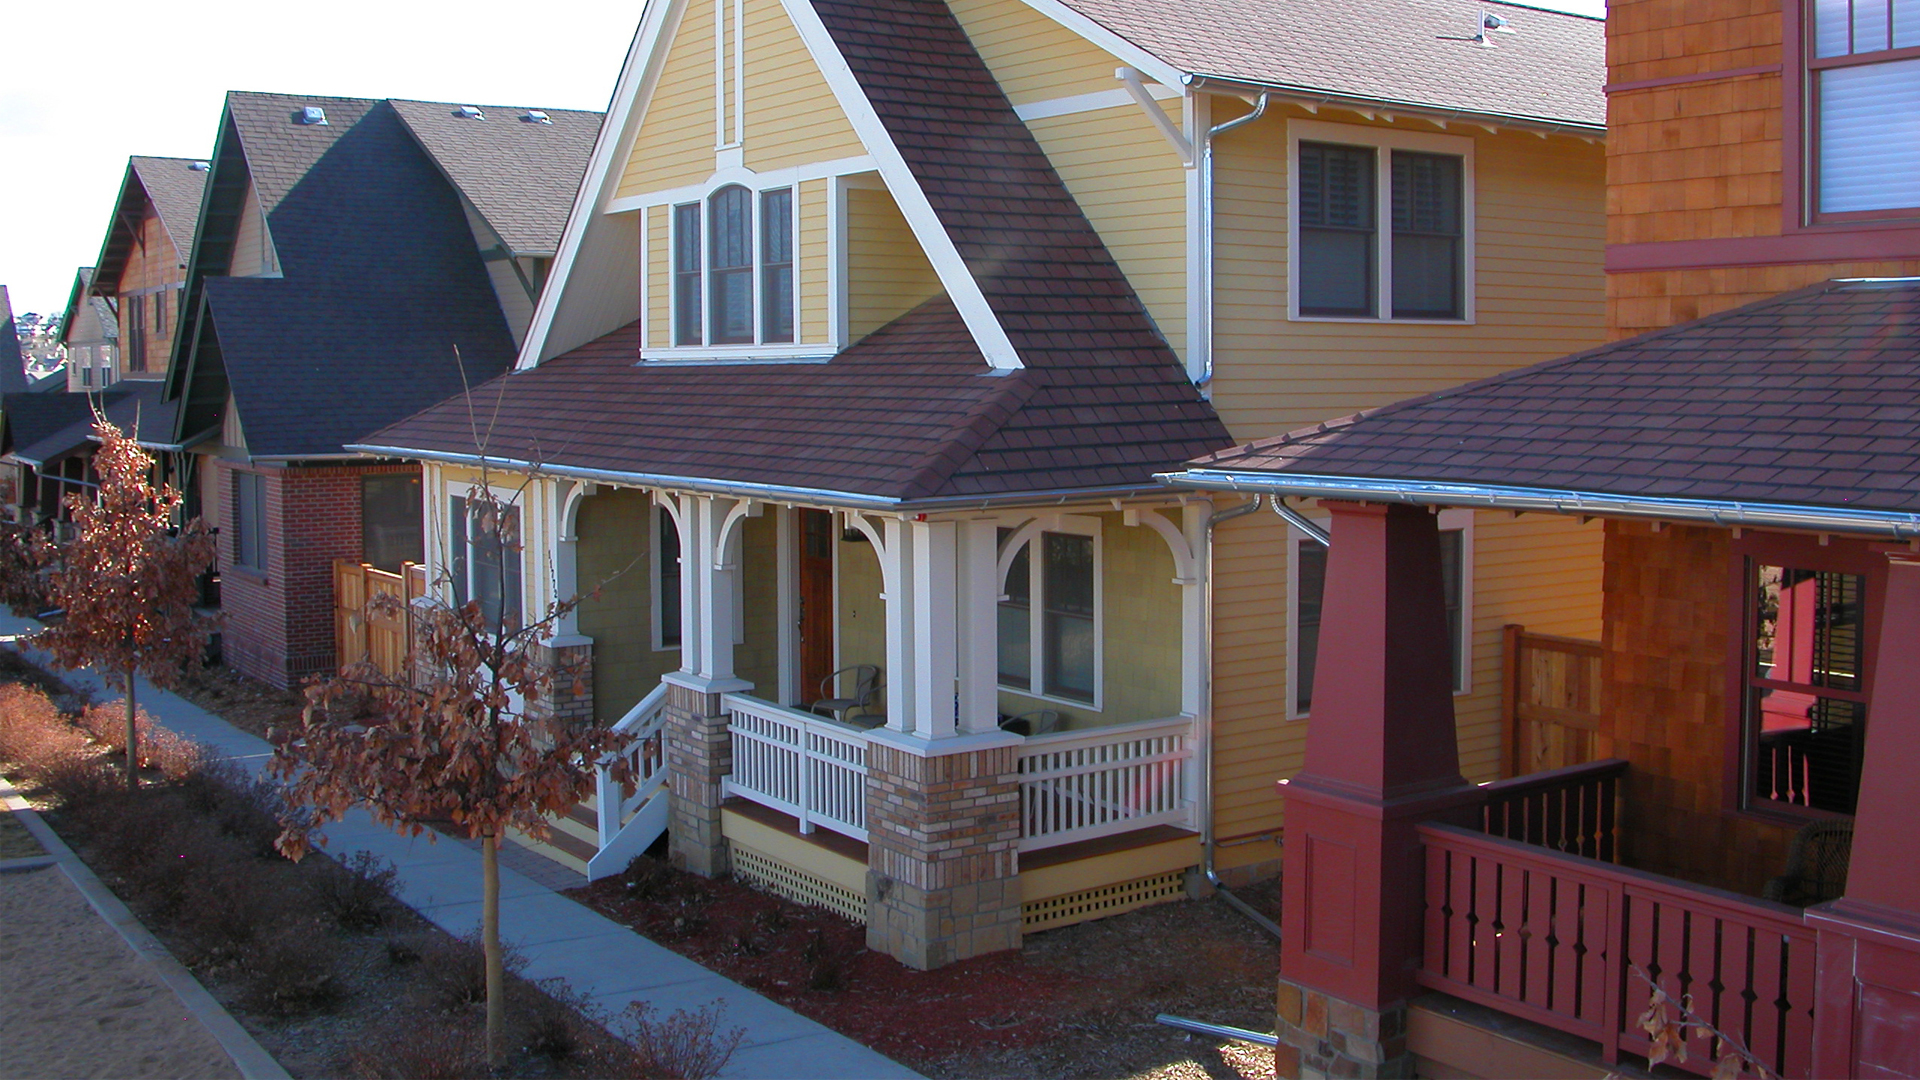 <p>Bradburn Village is proof that smart growth principles drive higher real estate value.</p>